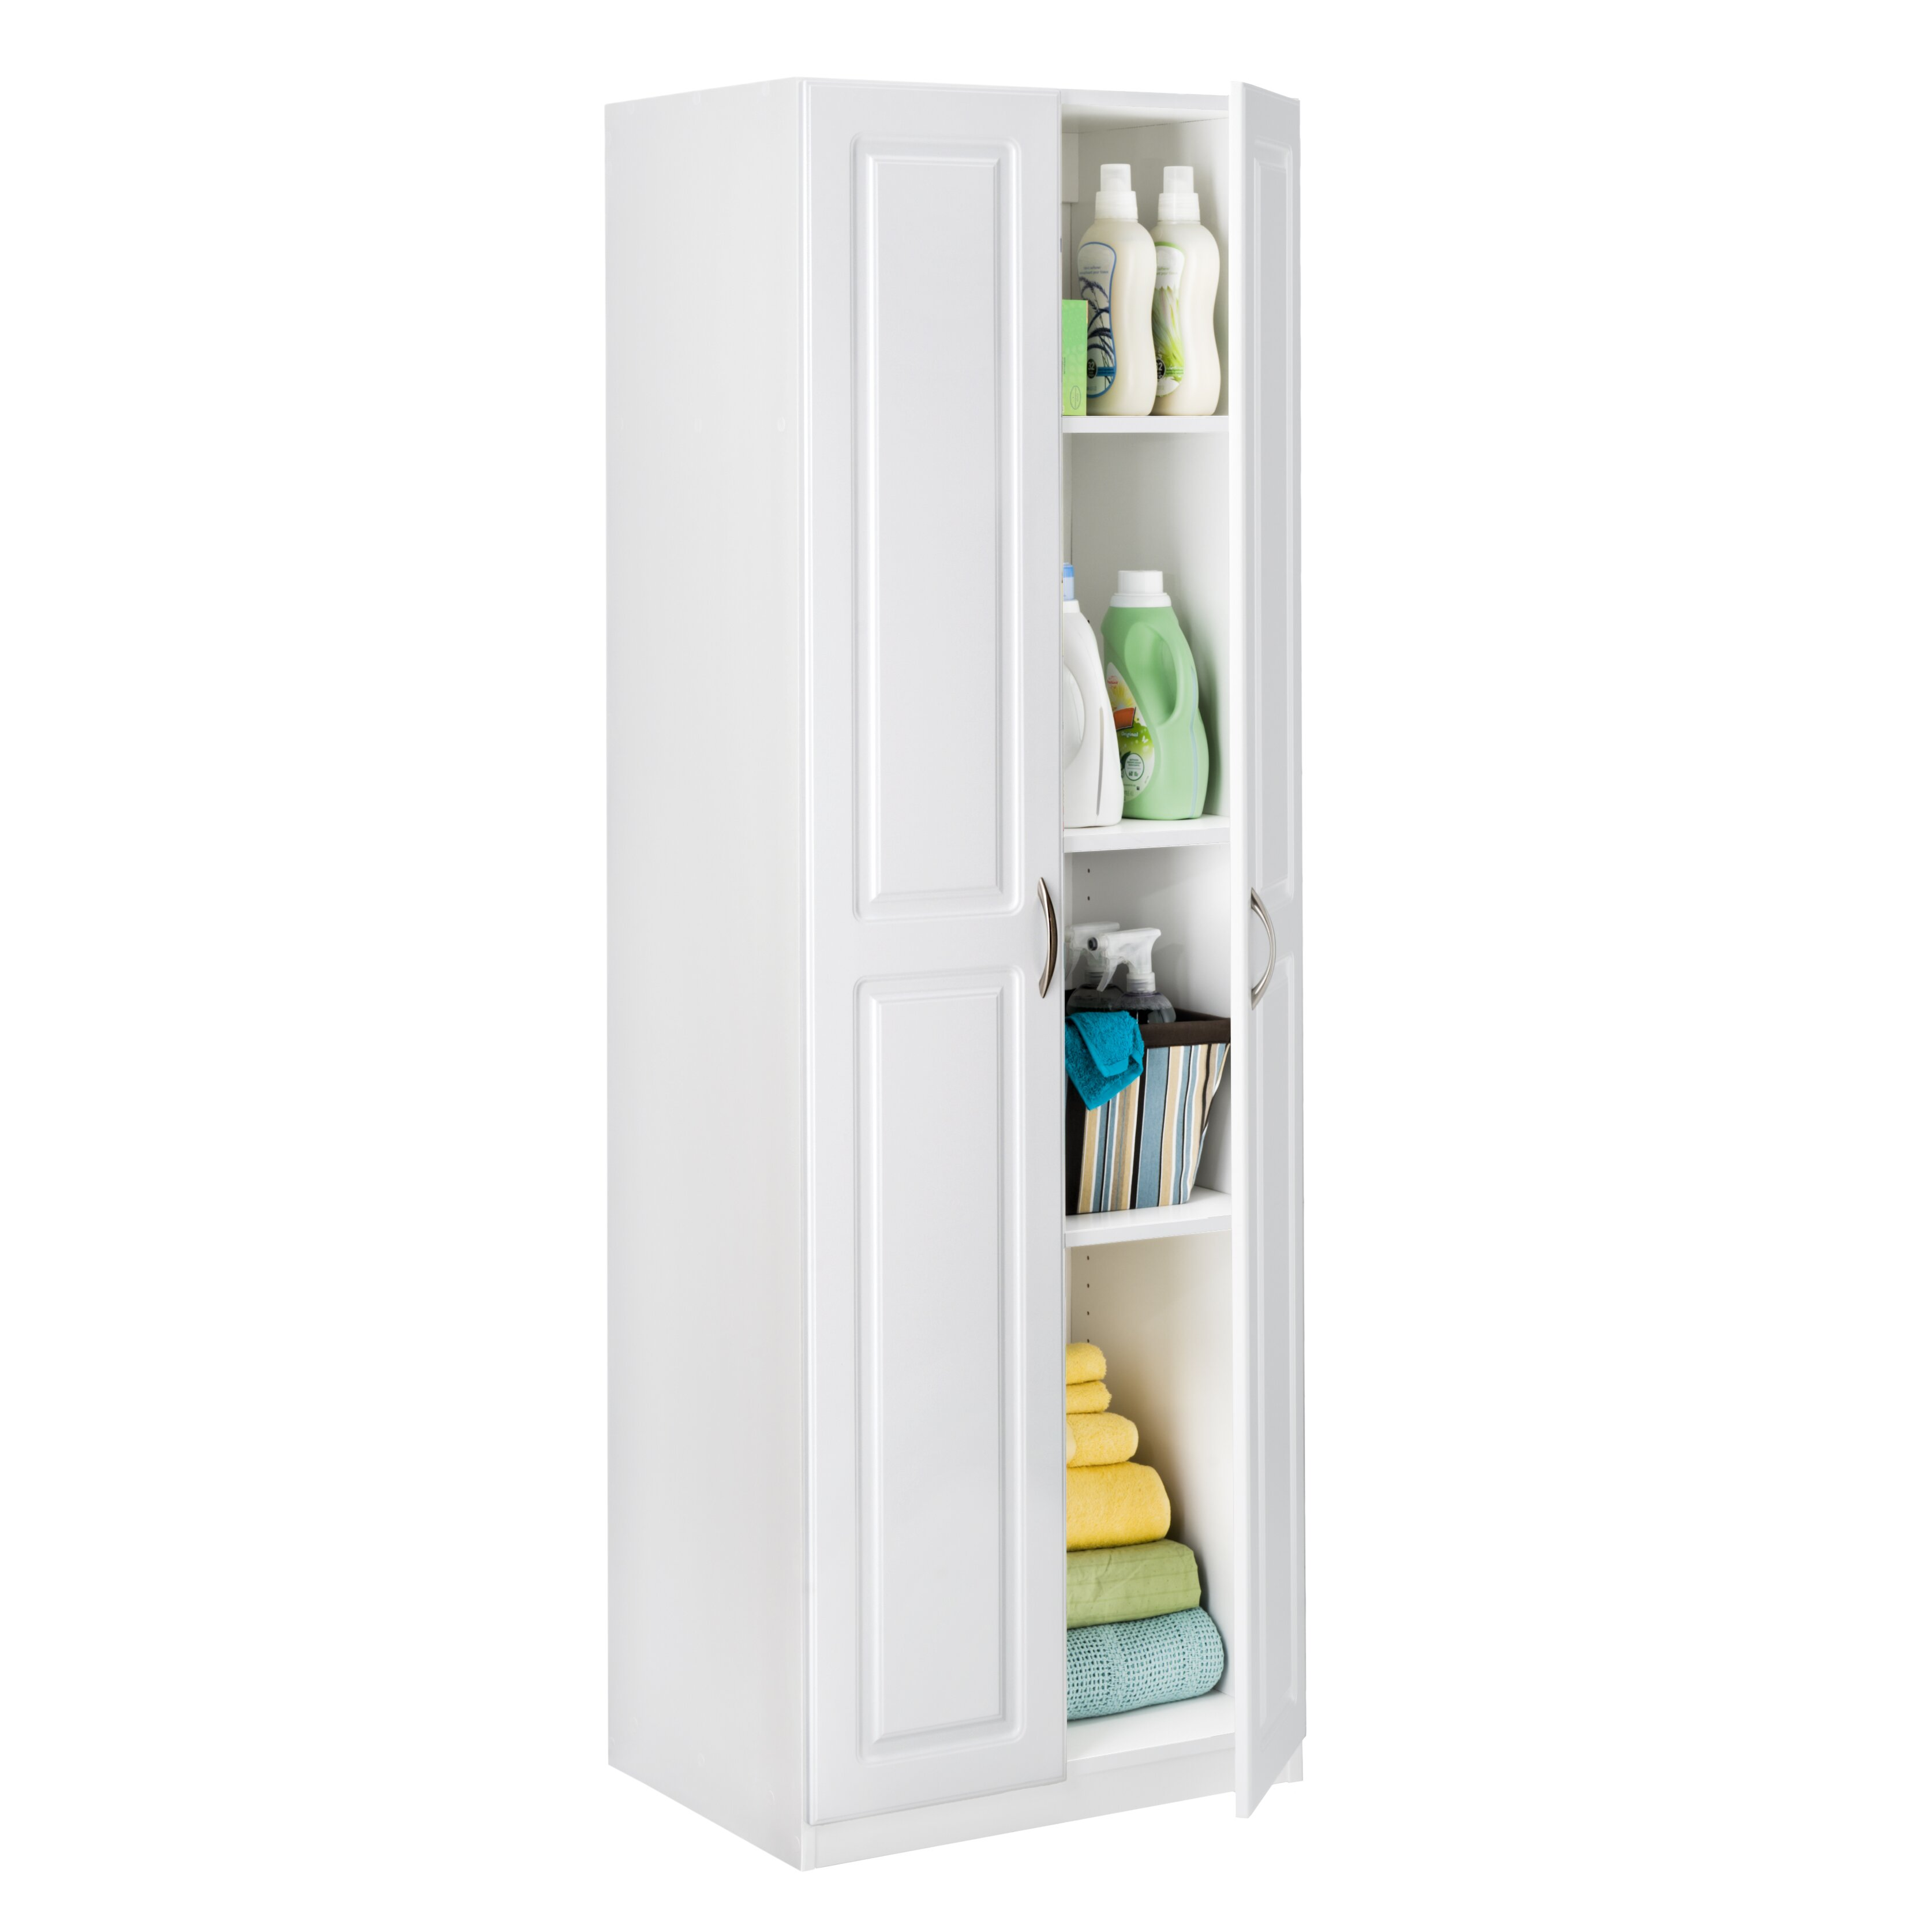 18 Storage Cabinet Closetmaid Dimensions 7173 H X 2402 W X 1812 D 2 Door